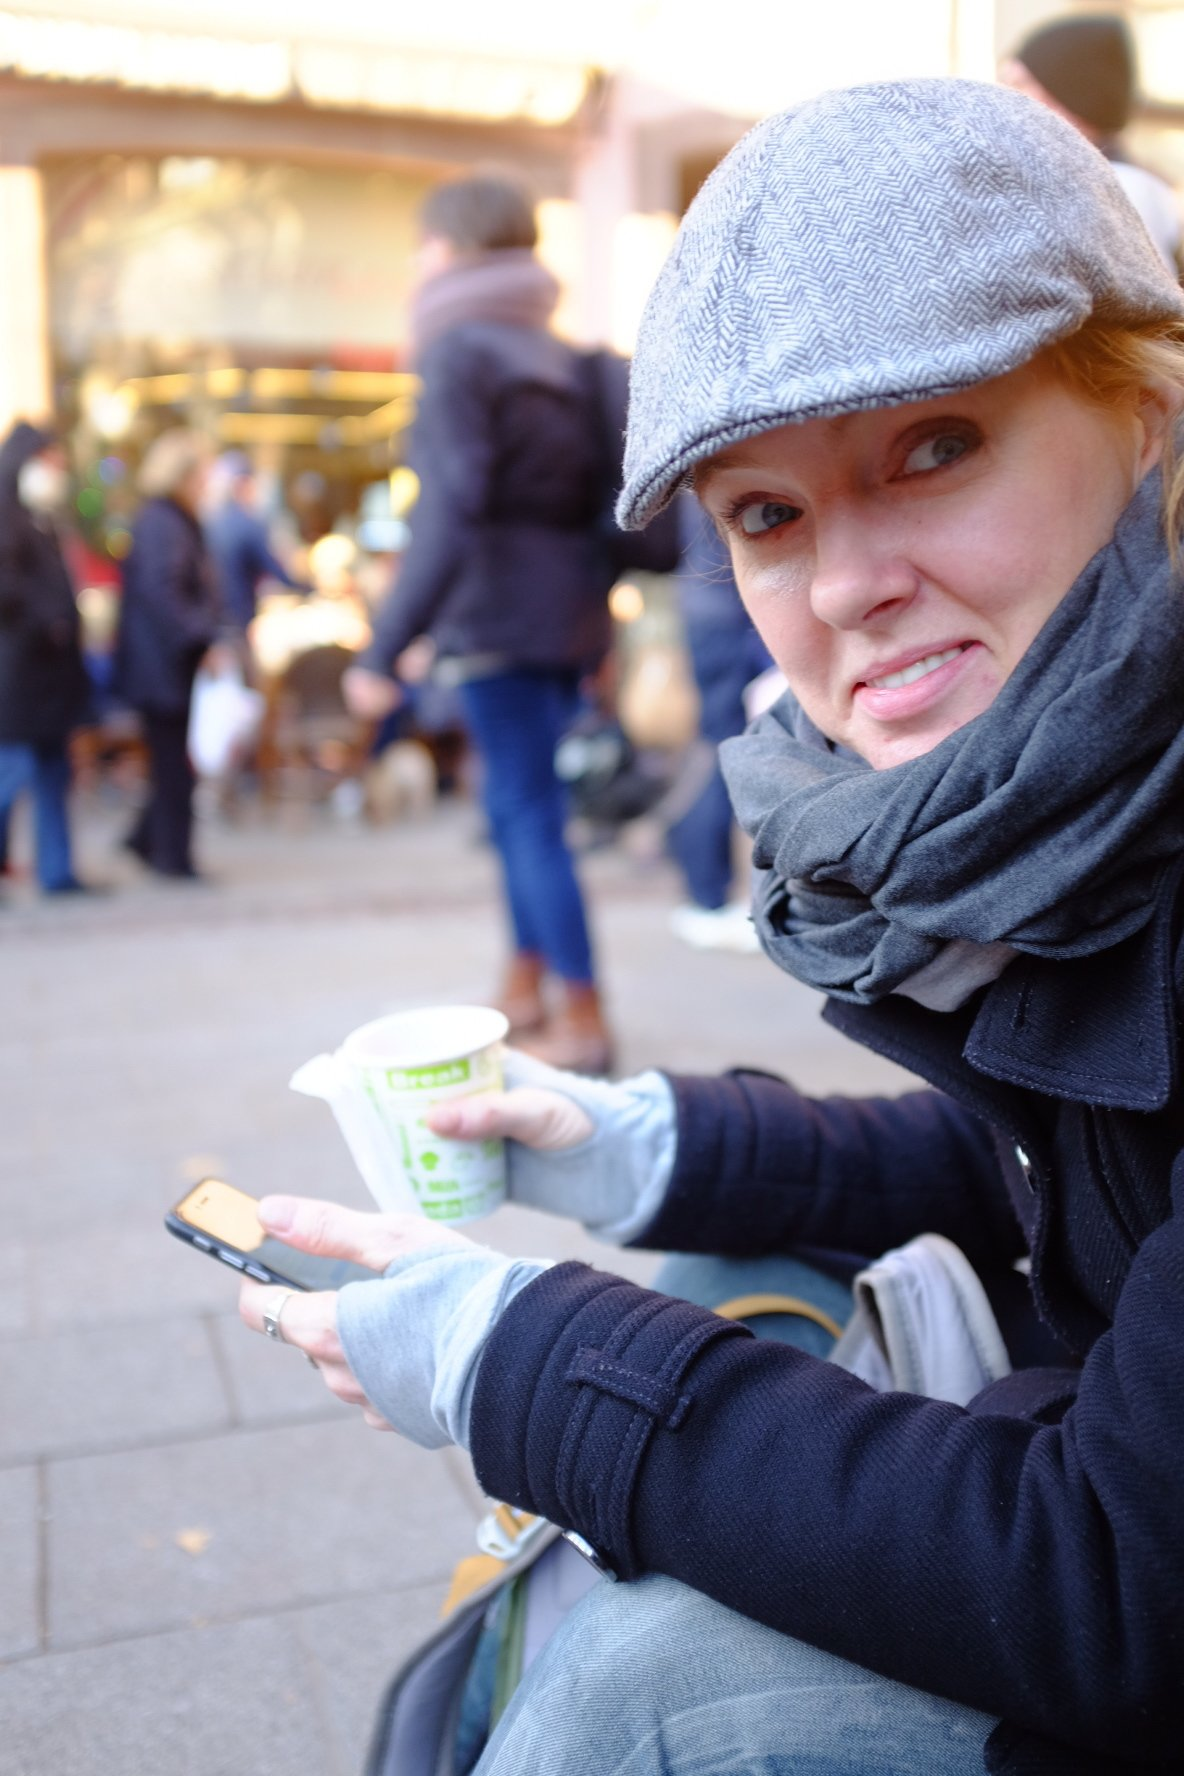 Sarah holding mulled wine at Christmas markets in Strasbourg